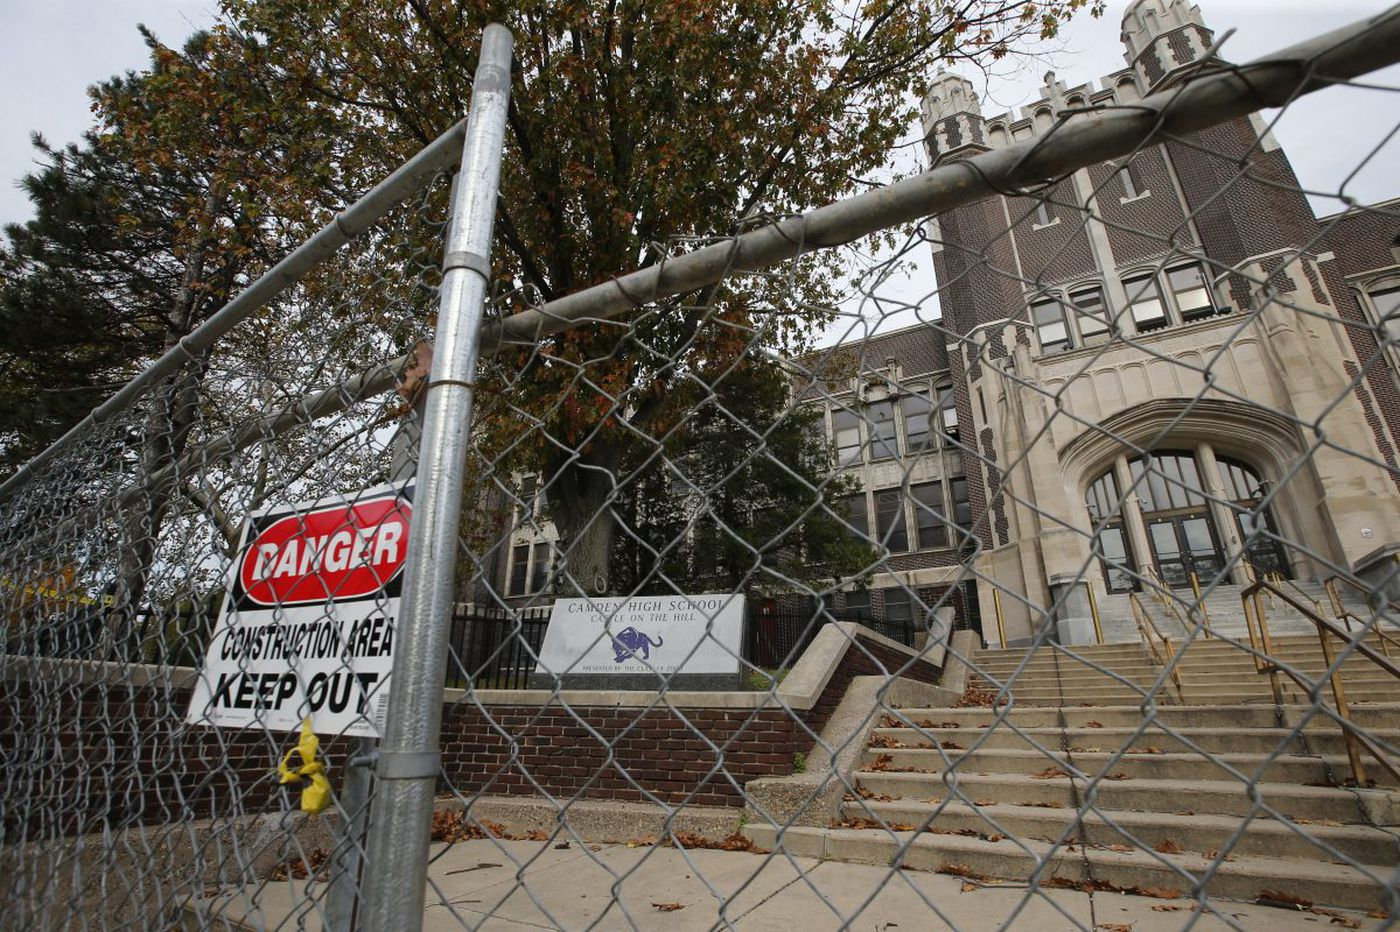 With excavators ready, state board won't consider historic-site status for Camden High School